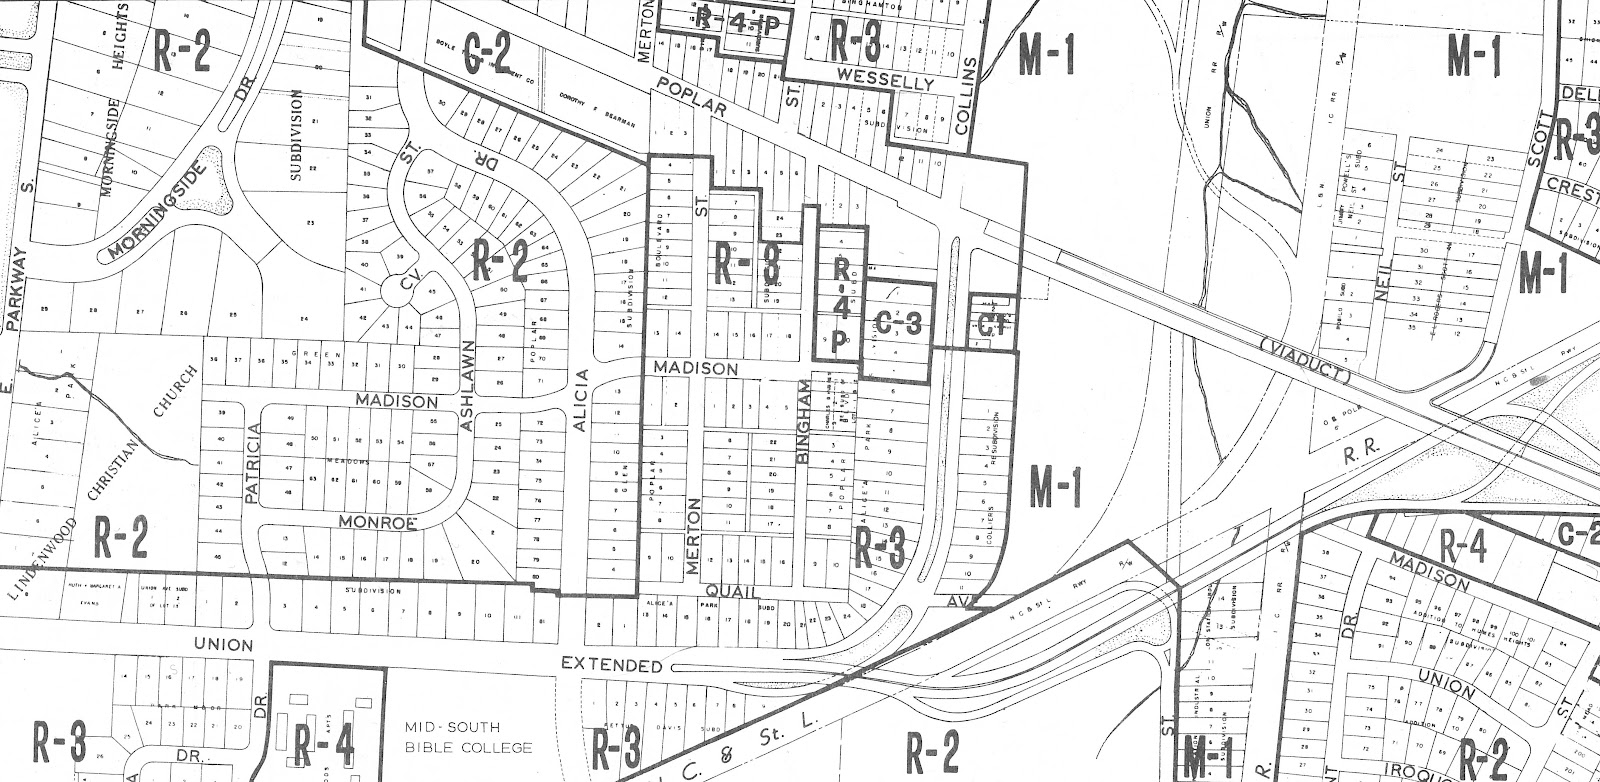 this zoning atlas produced by the memphis and shelby county planning commission in 1967 confirms what we have surmised from the 1964 graphic publications